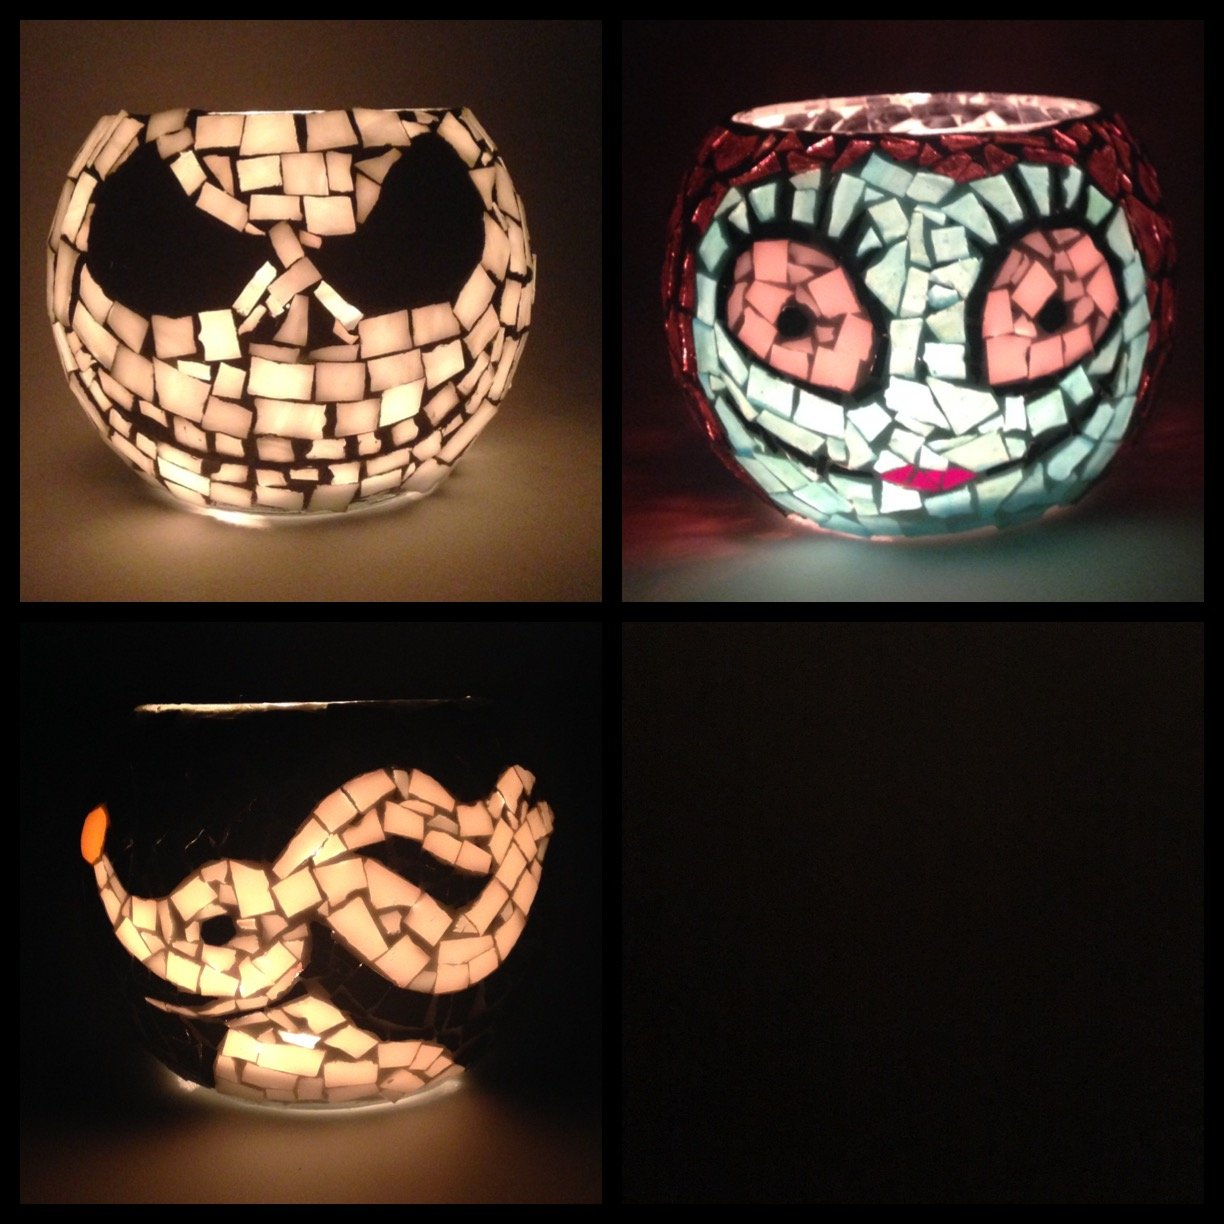 Mosaic Candle Holders,3 Votives, Handcrafted Mosaic stain glass characters,